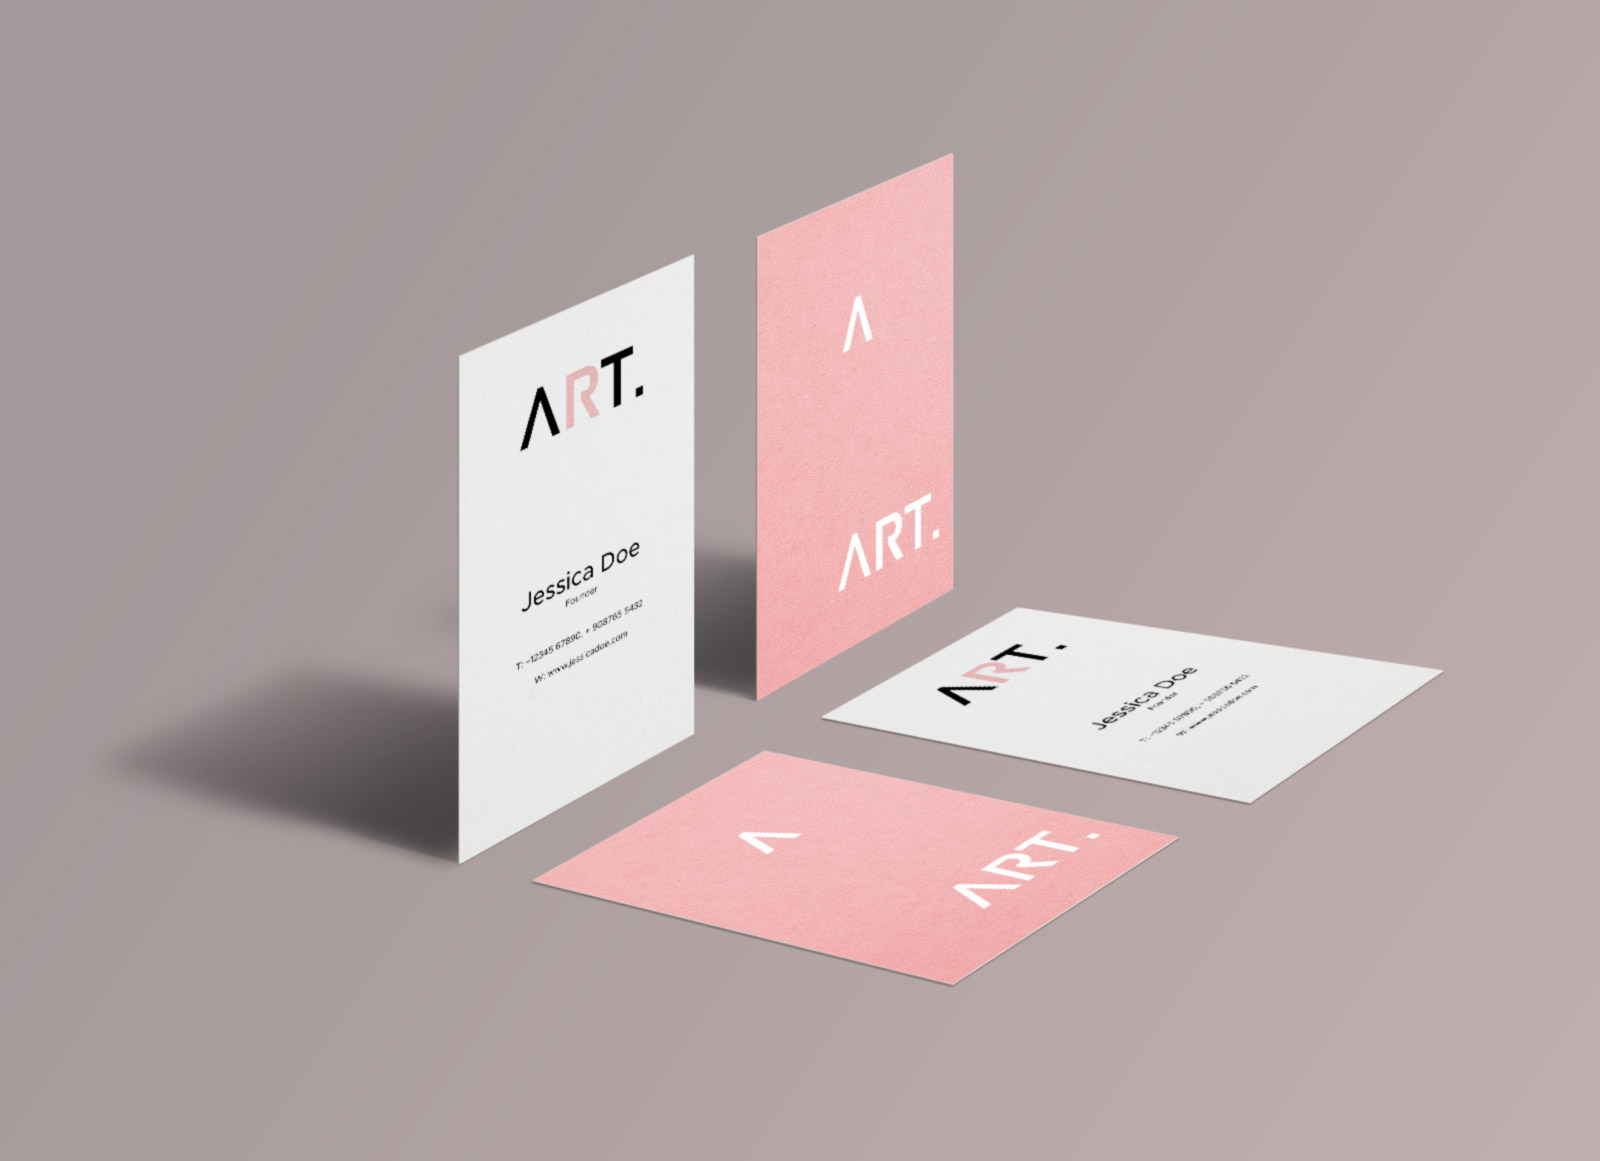 Free-Vertical-Perspective-Business-Card-Mockup-PSD